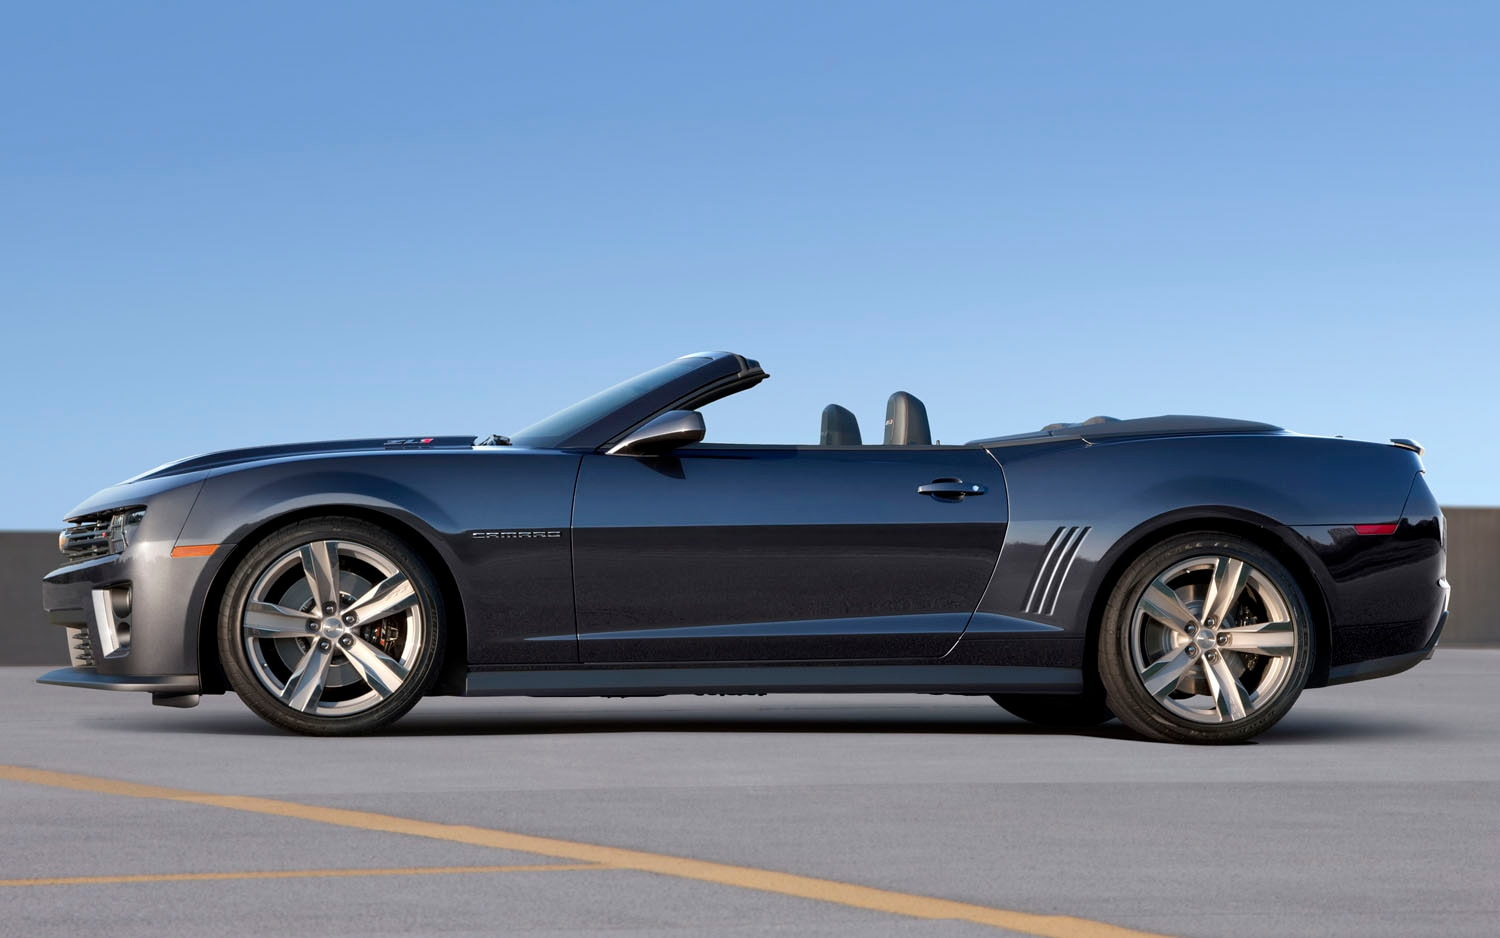 2013 Chevrolet Camaro ZL1 Convertible Left Side View